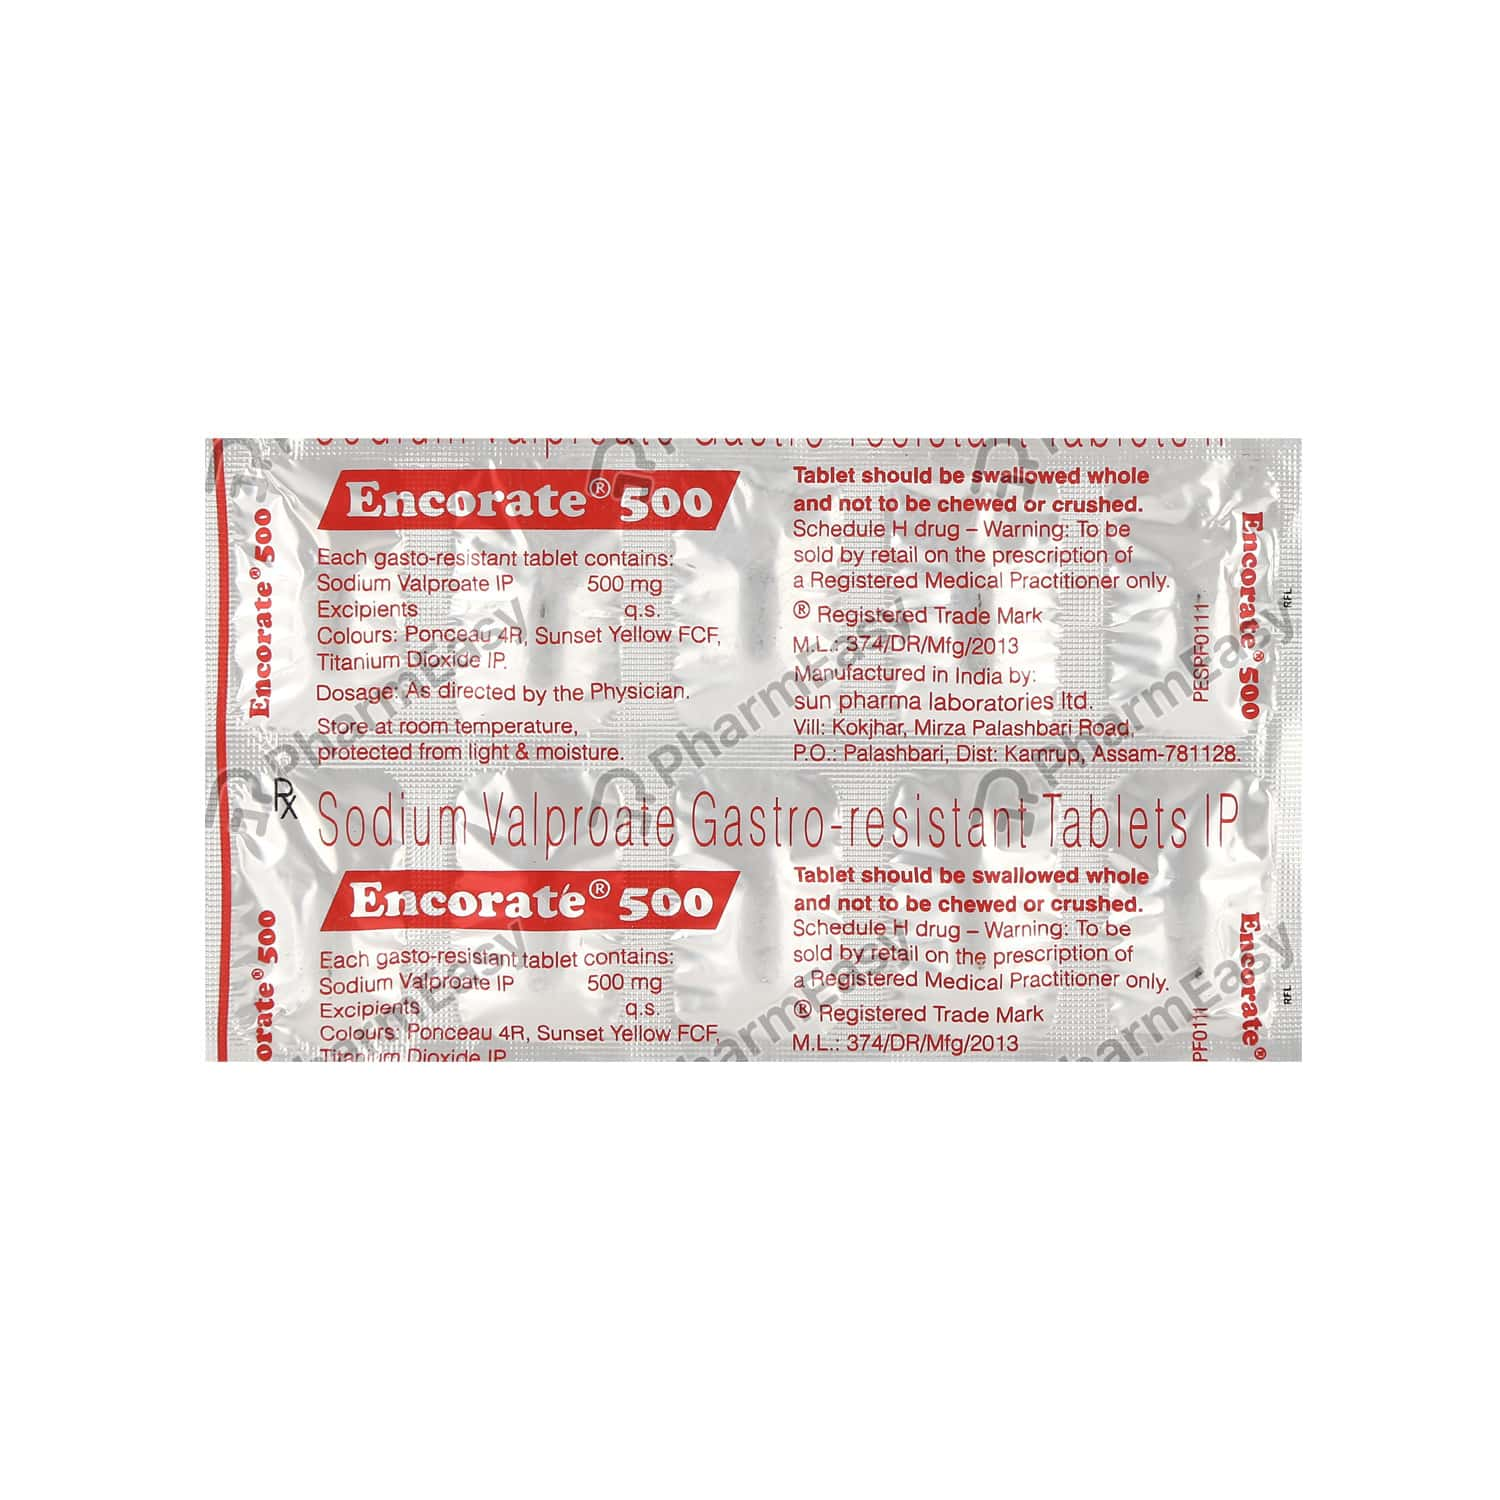 Encorate chrono gold 300mg side effects